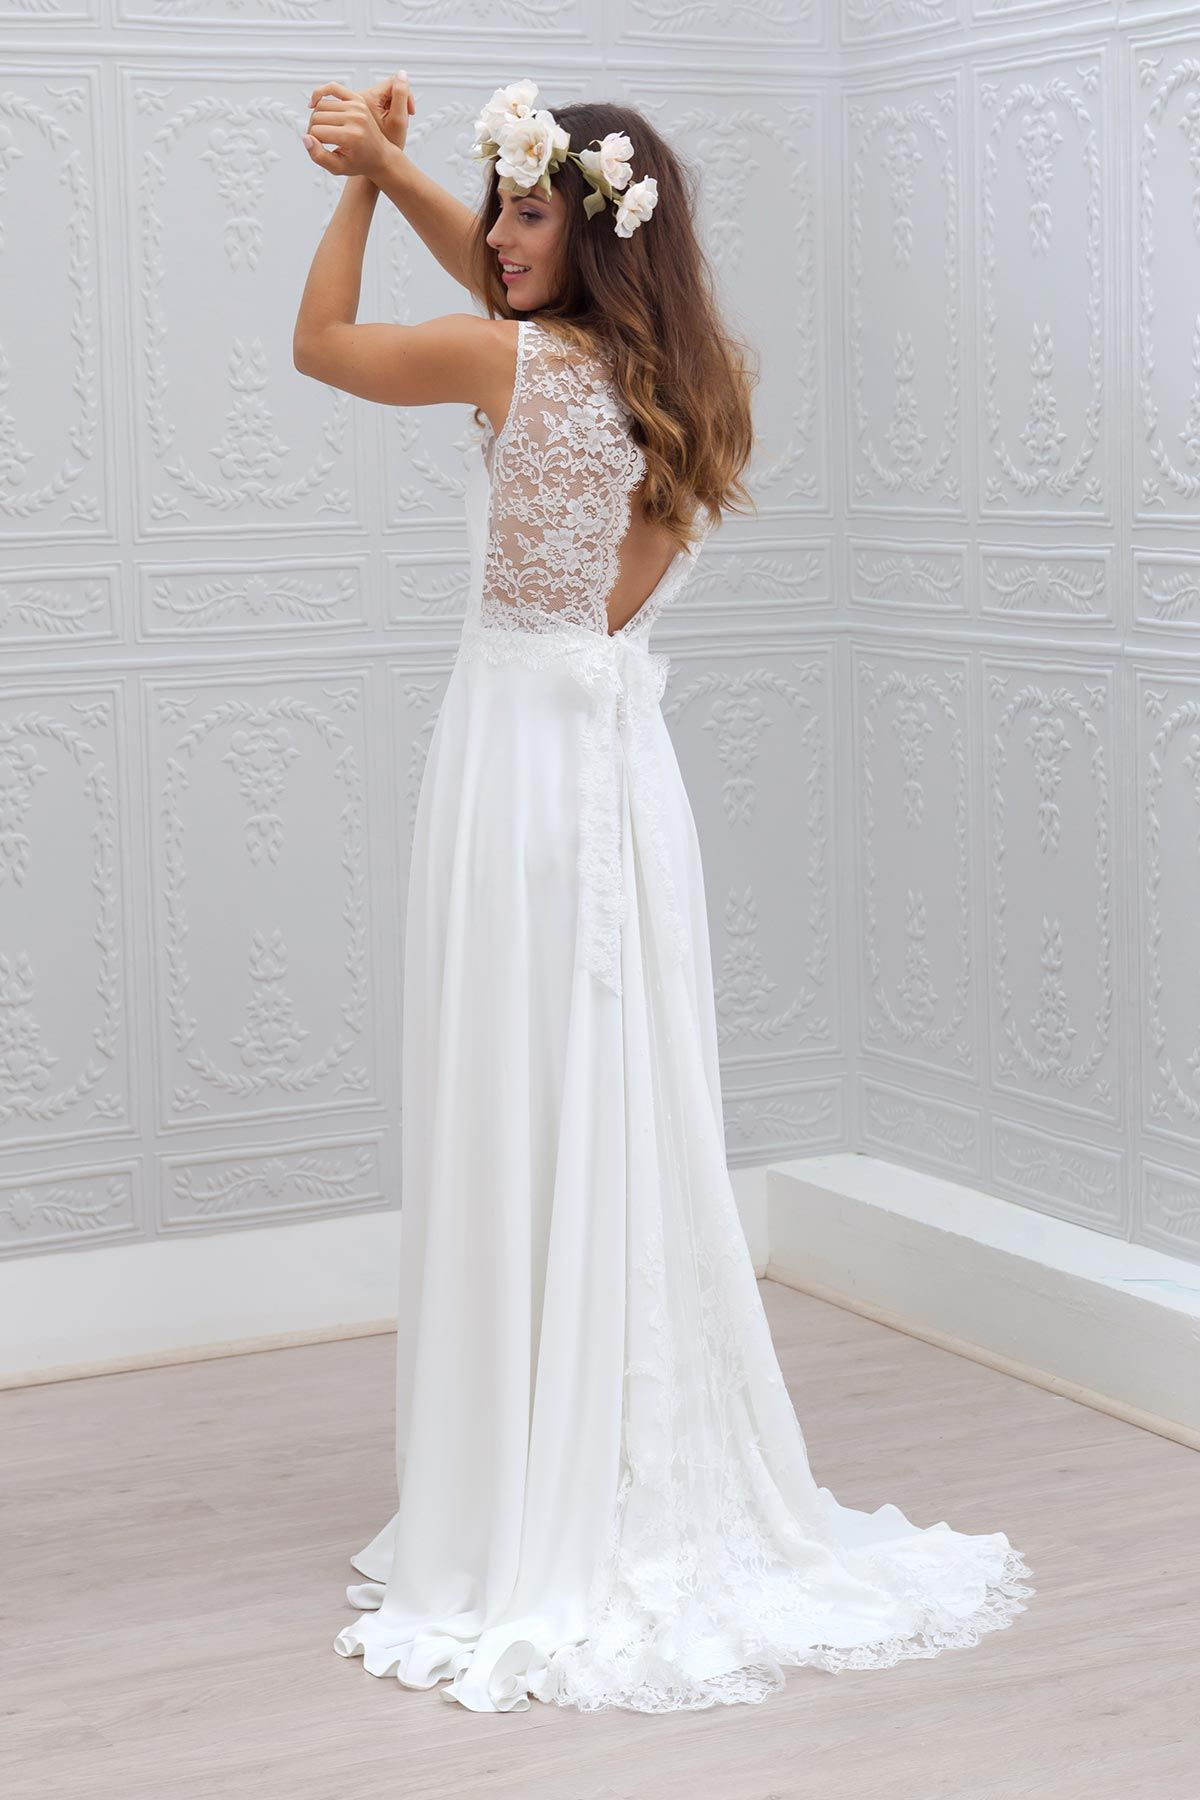 Beach Wedding Dresses Made to Perfection | Wedding, Wedding dress ...